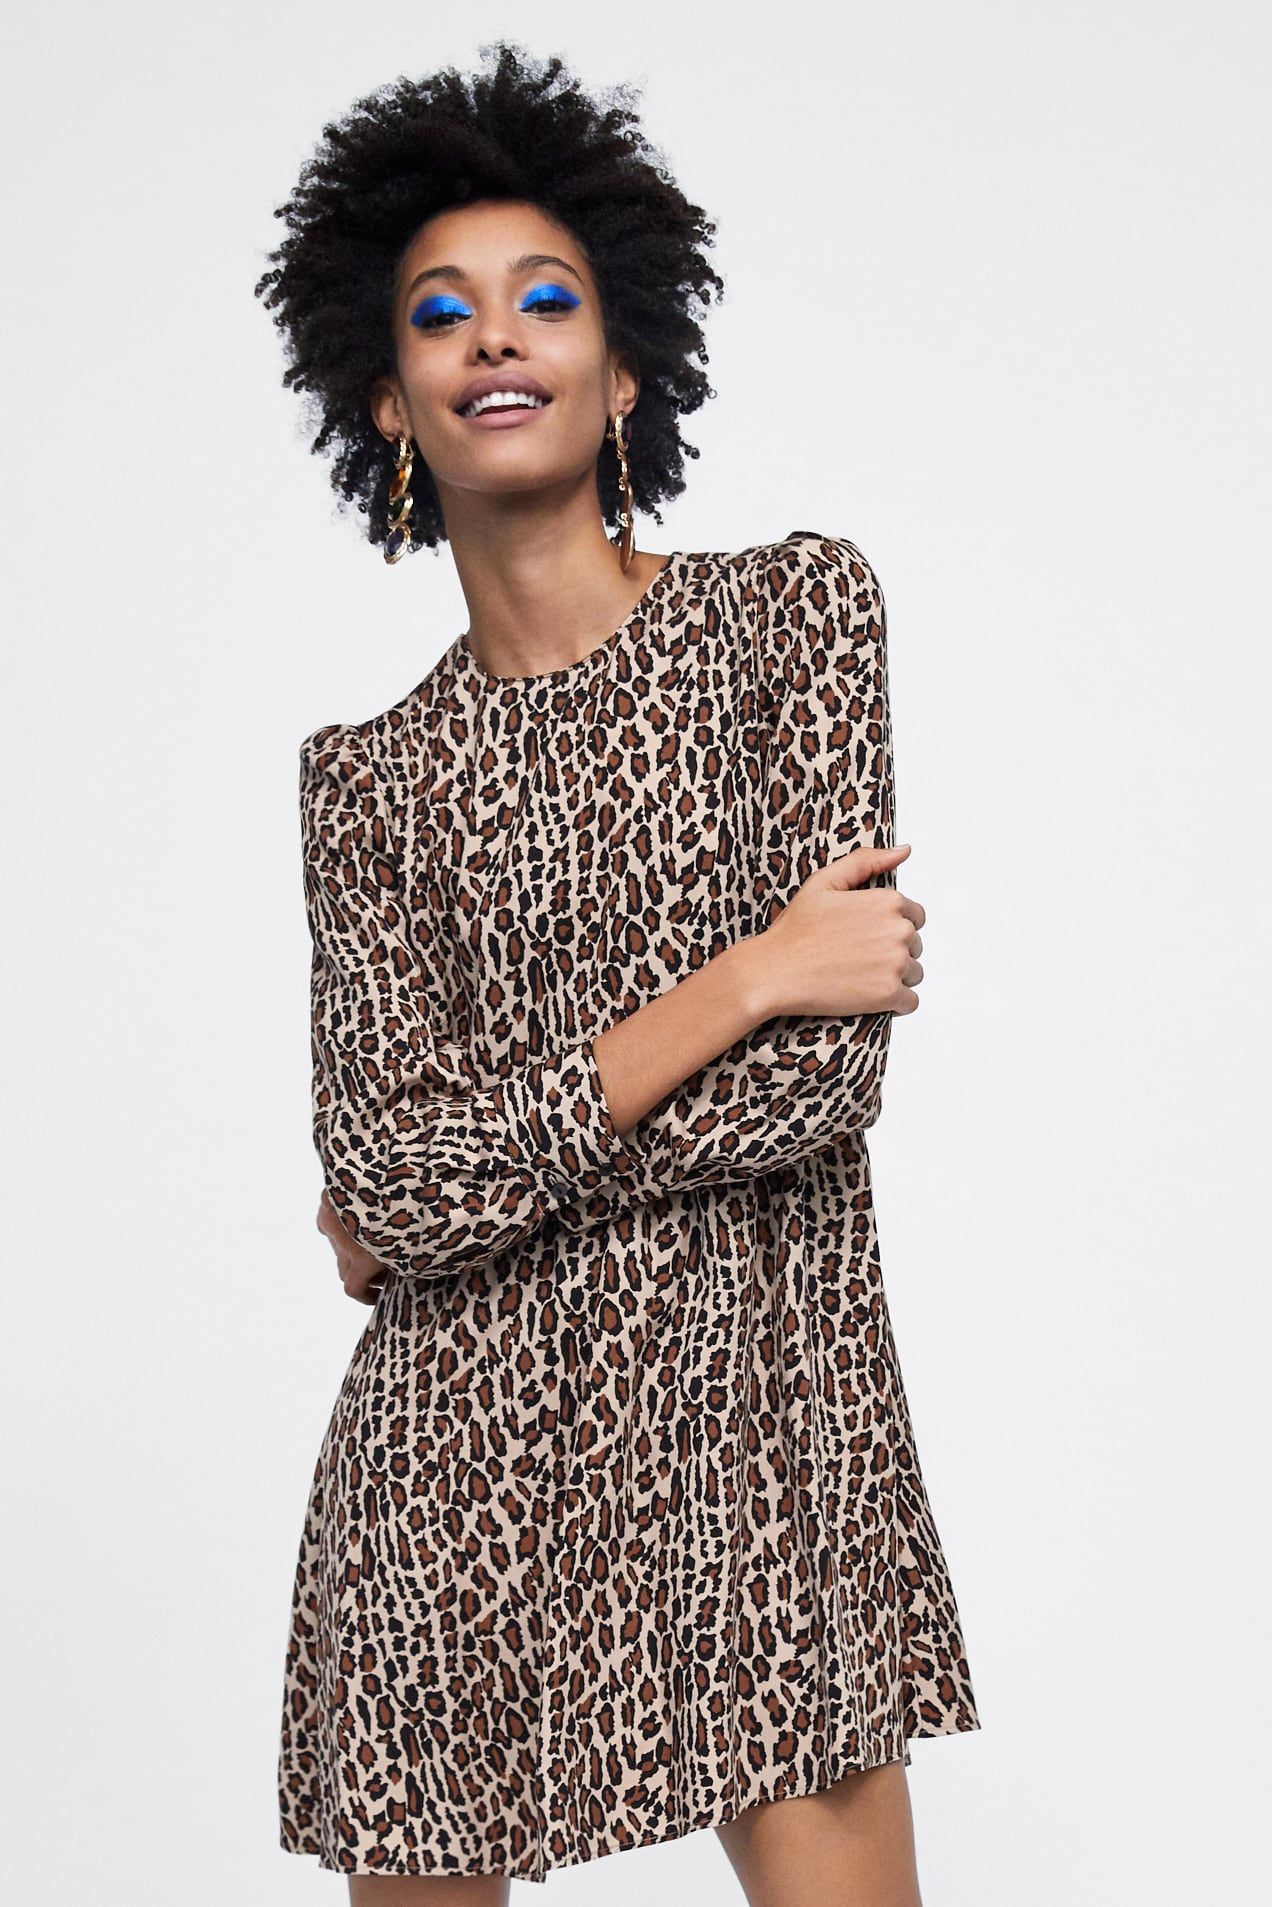 Image 1 Of Animal Print Dress From Zara Animal Print Dresses Fashion Dresses